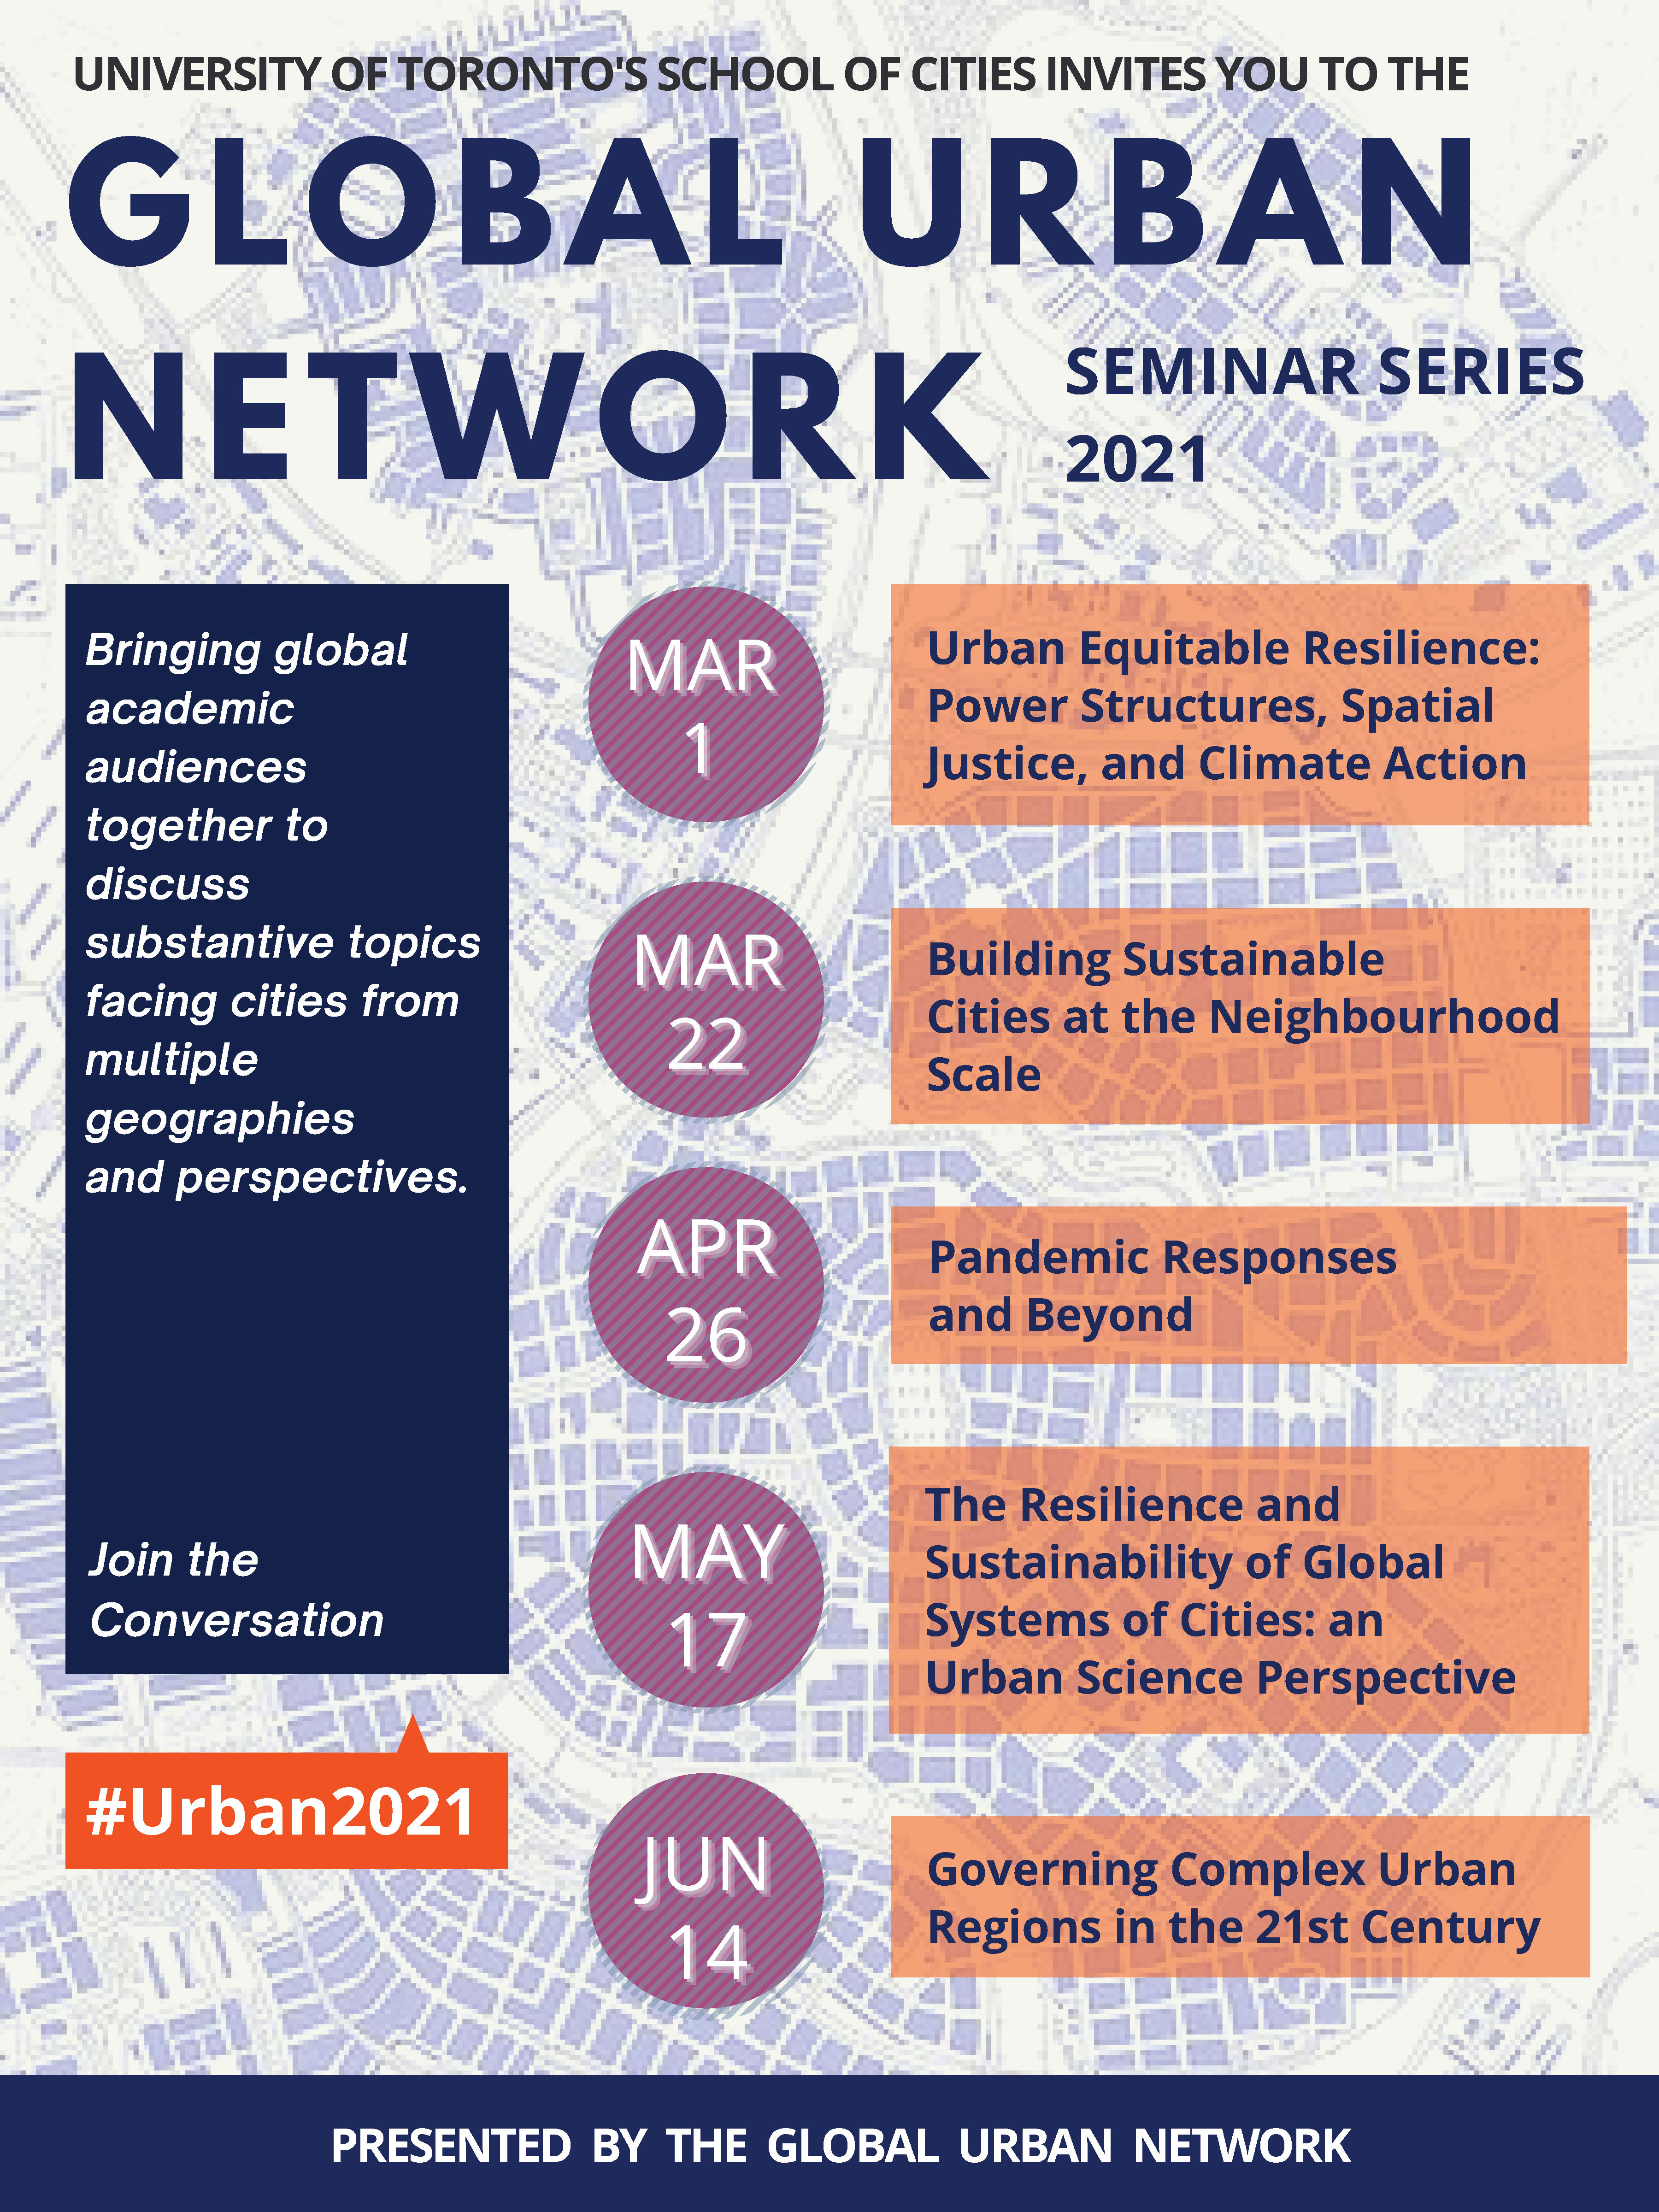 Global Urban Network Seminar Series poster with dates and themes mentioned, along with the series hashtag #Urban2021.